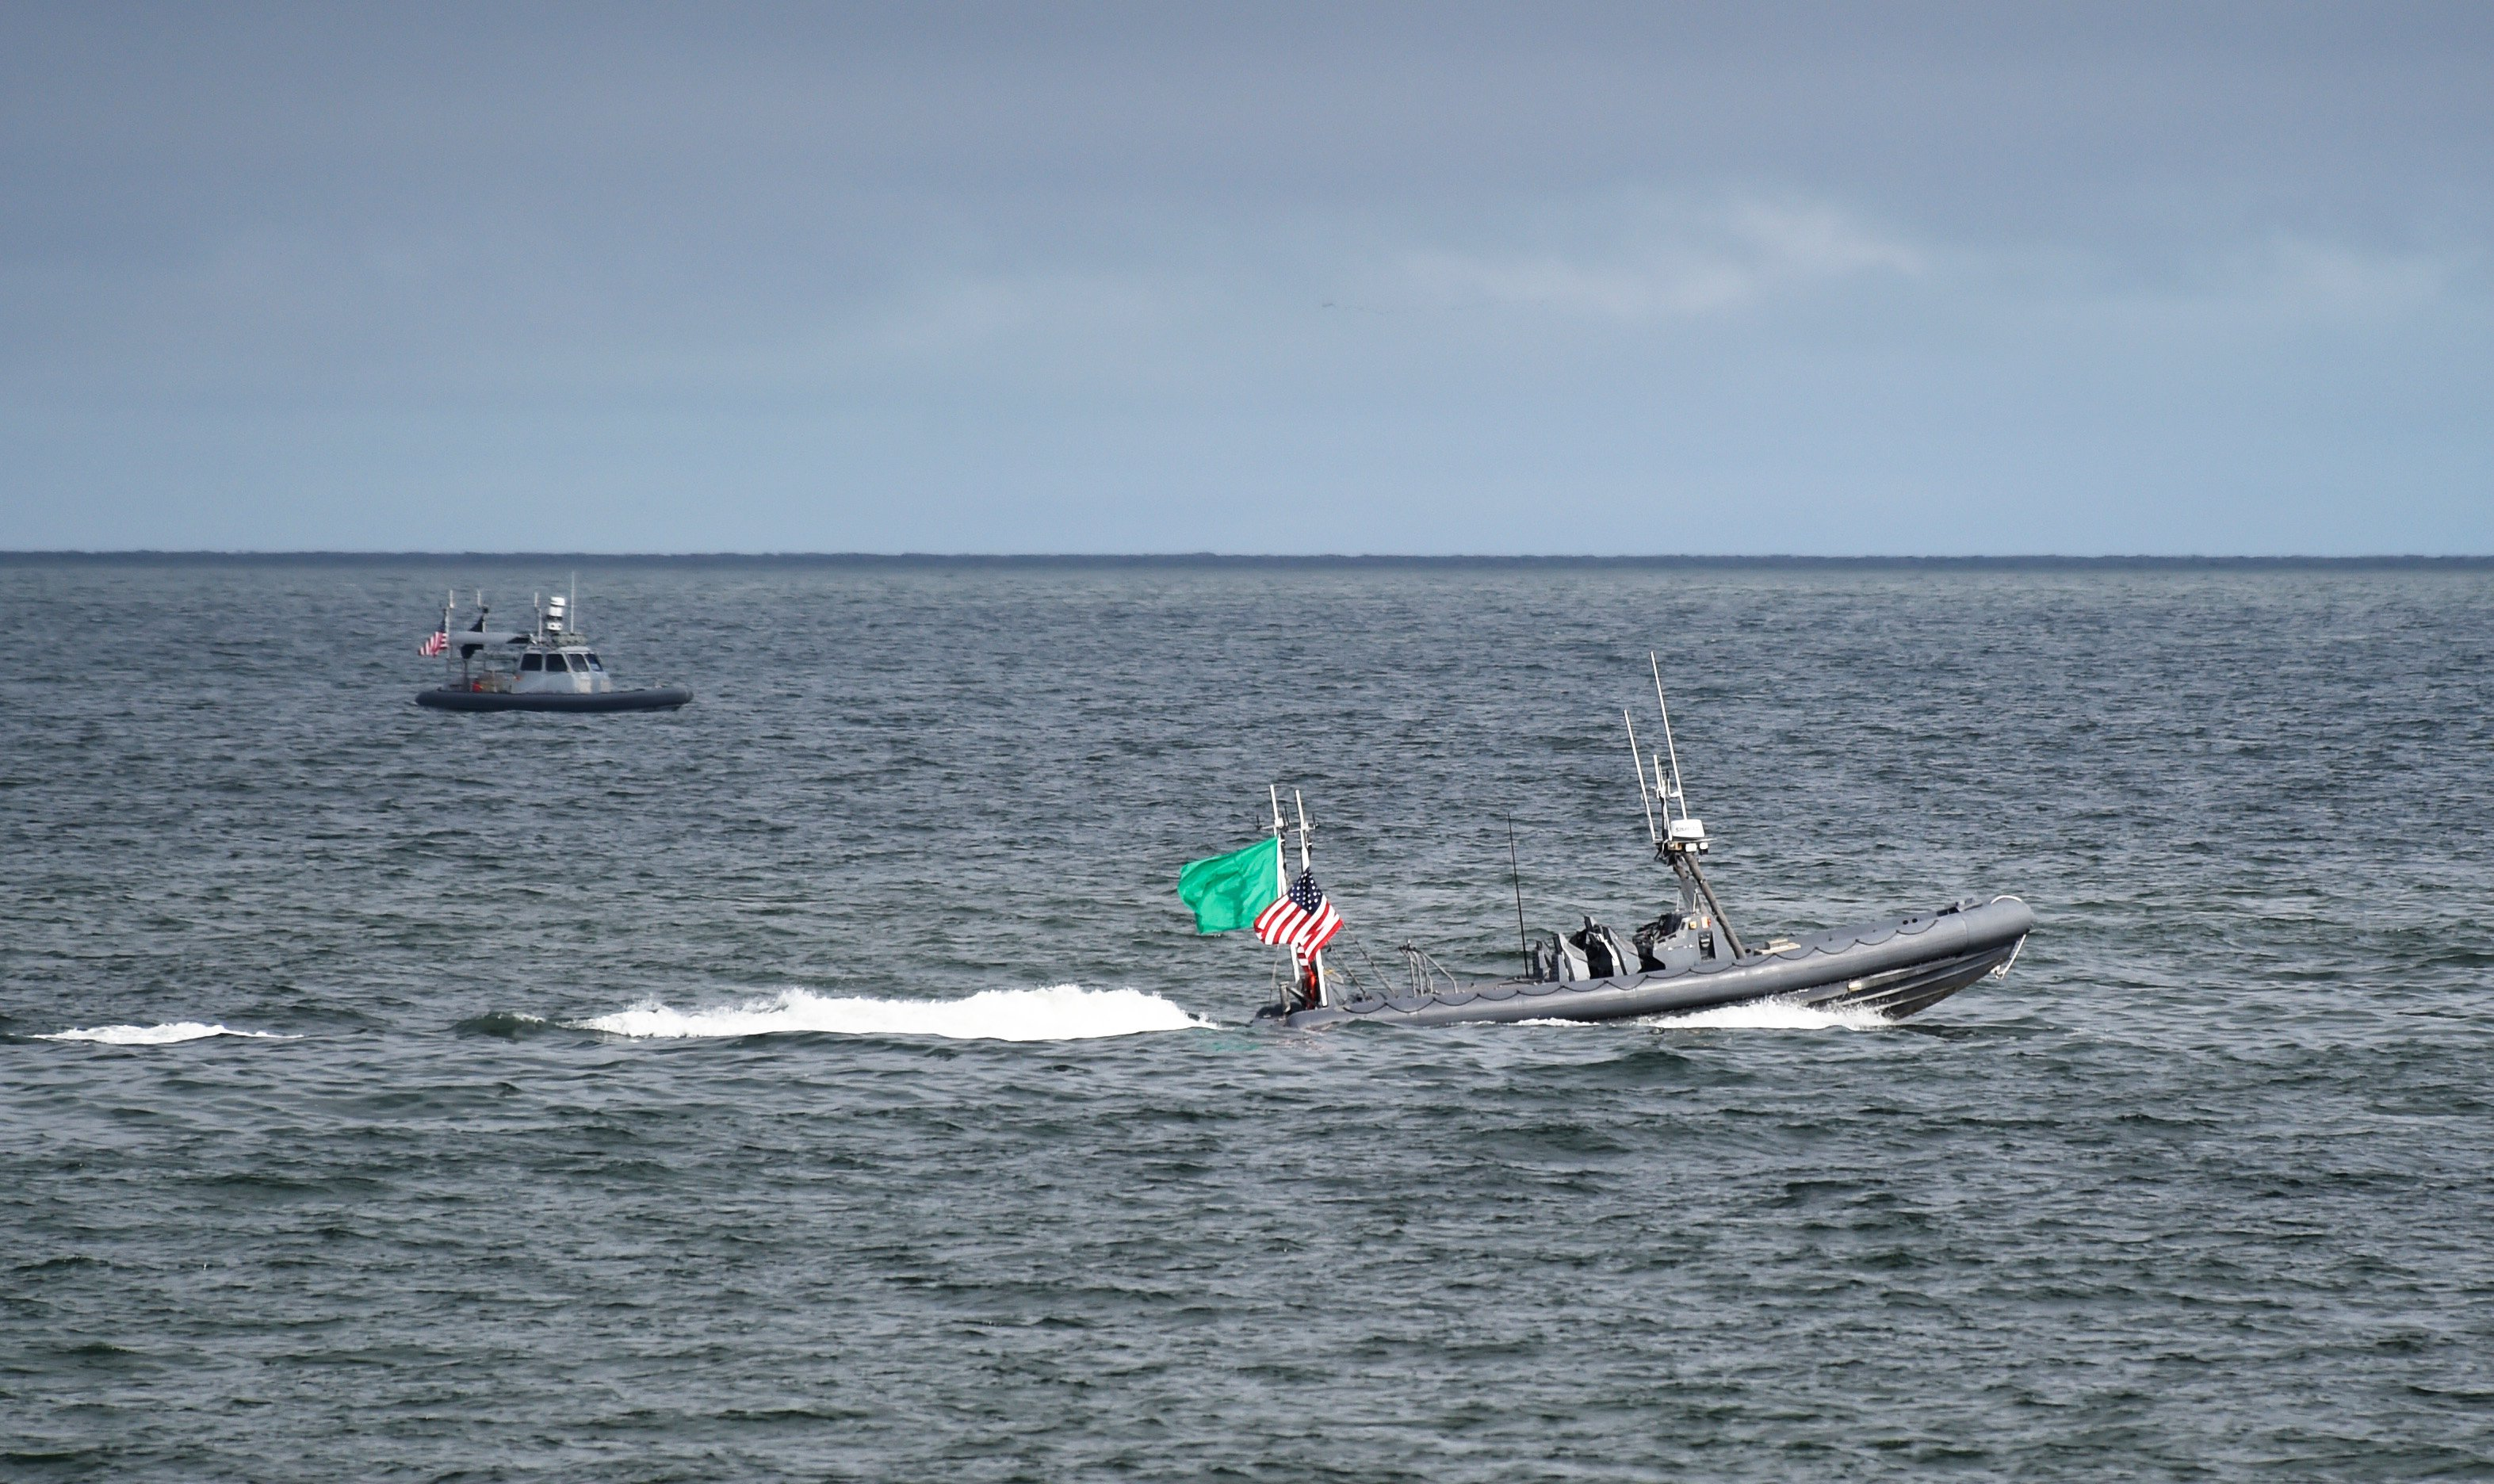 Two unmanned rigid-hull inflatable boats operate autonomously during an Office of Naval Research (ONR)-sponsored demonstration of swarmboat technology held at Joint Expeditionary Base Little Creek-Fort Story on Sept. 30, 2016. US Navy photo.